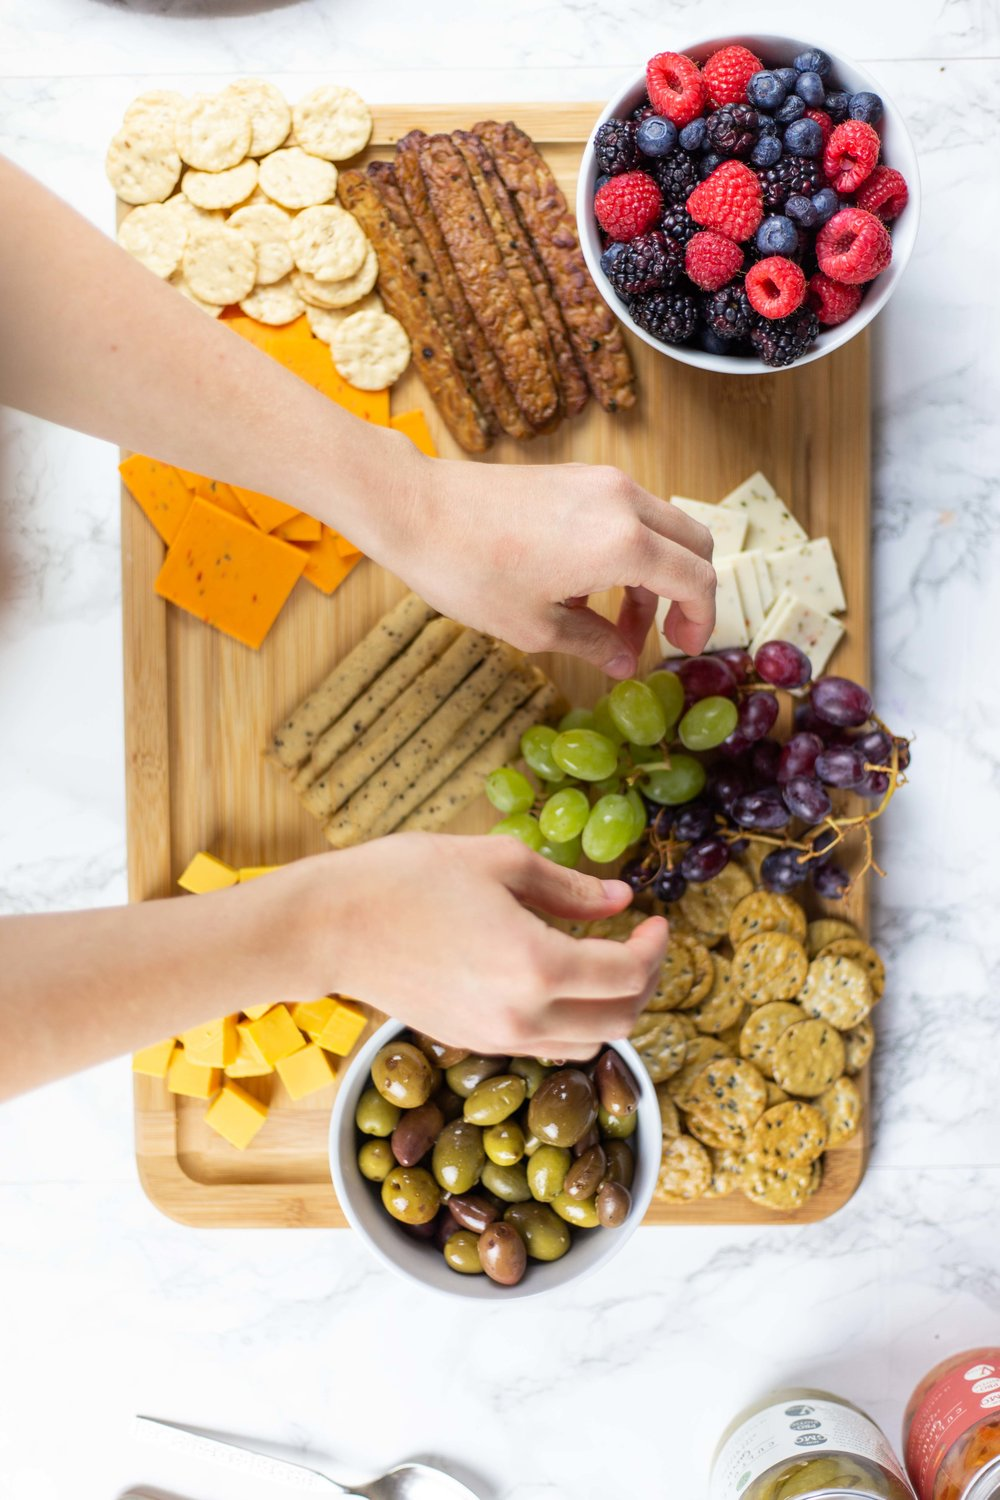 The Ultimate Vegan Snack Board | How To Make a Vegan Cheese Board | Vegan Charcuterie Board